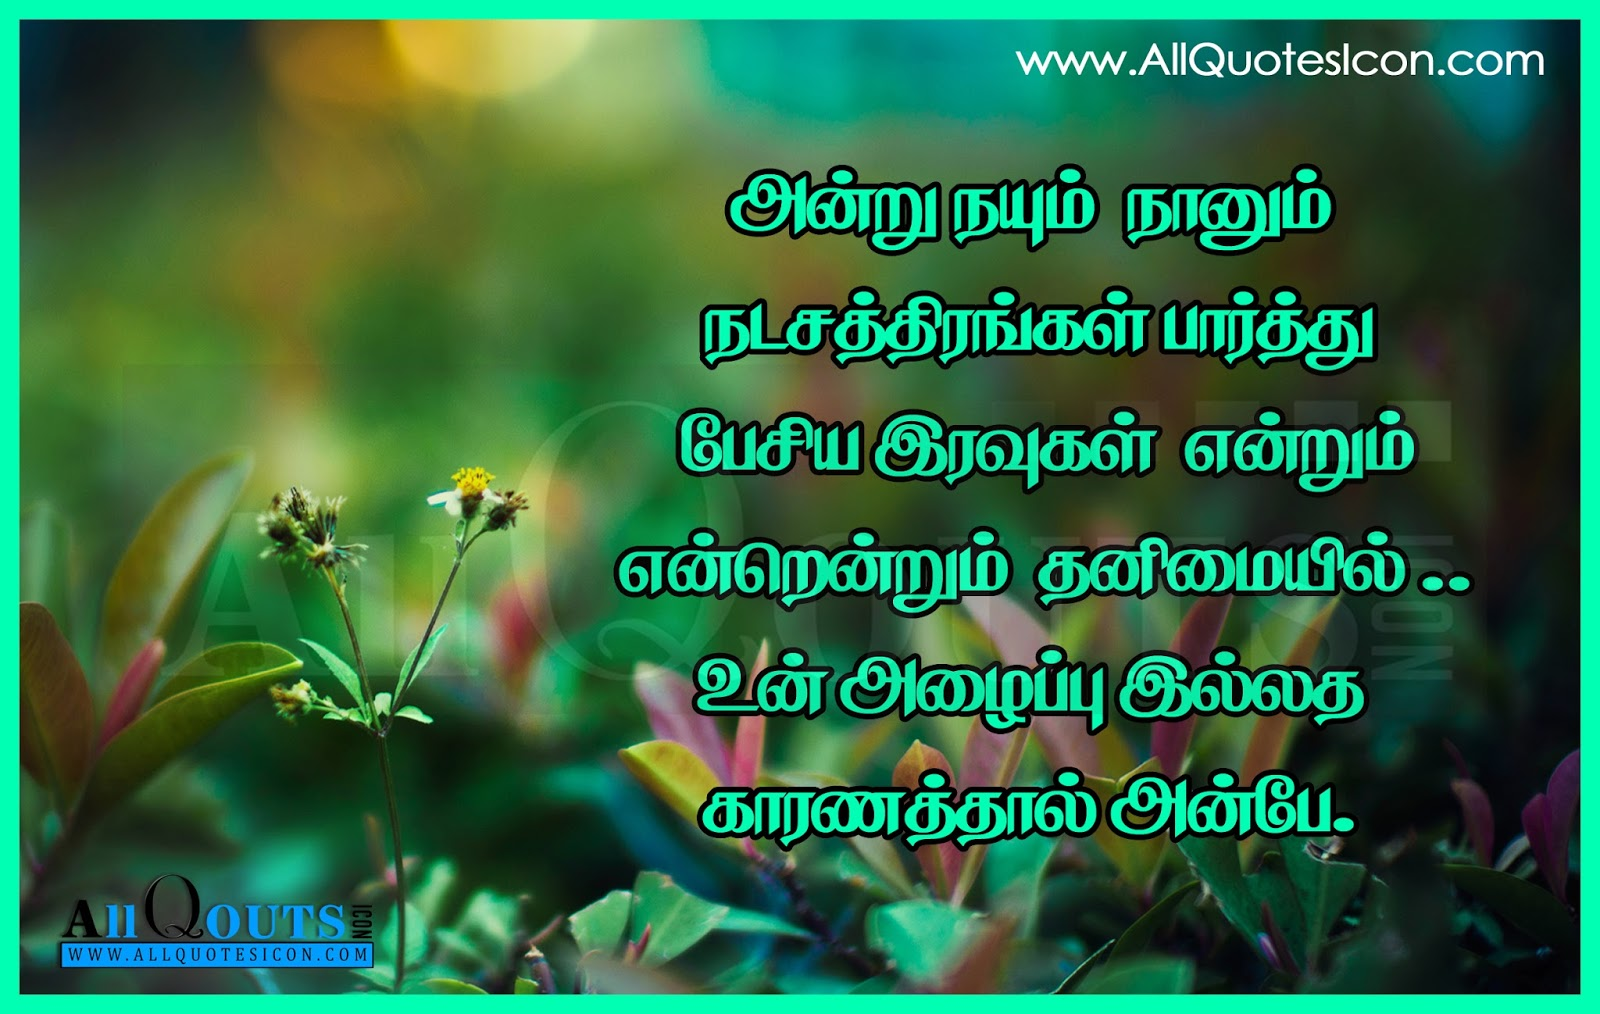 Quotes About Life In Tamil Motivational Leadership Tamil Quotes